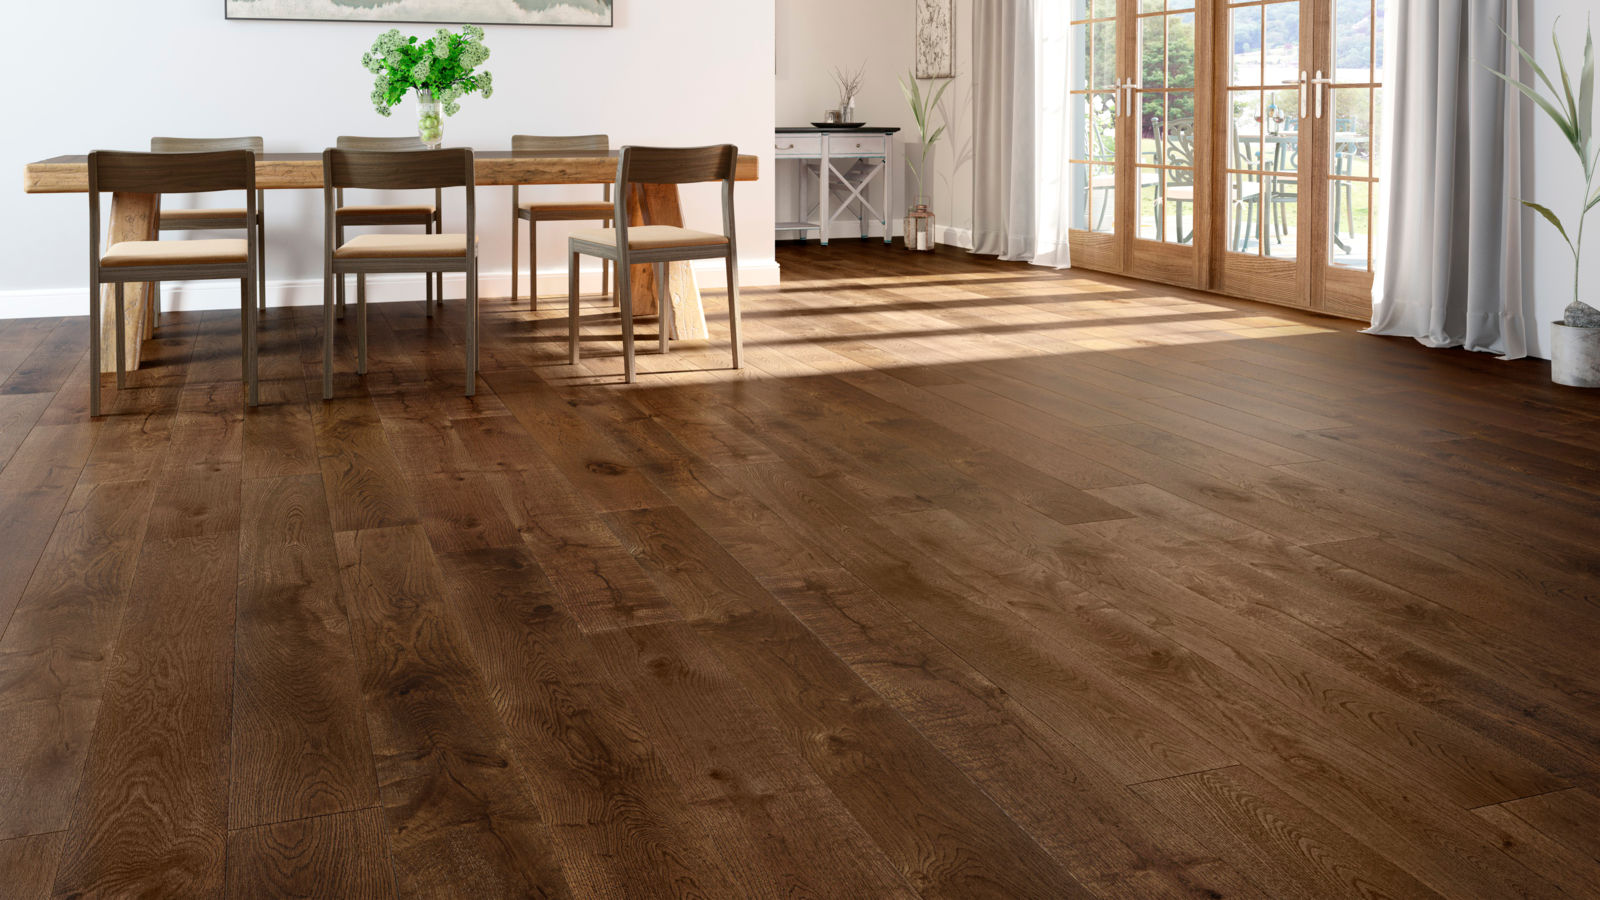 supplies dr flooring directory ontario kitchener droven floors ca shirley in